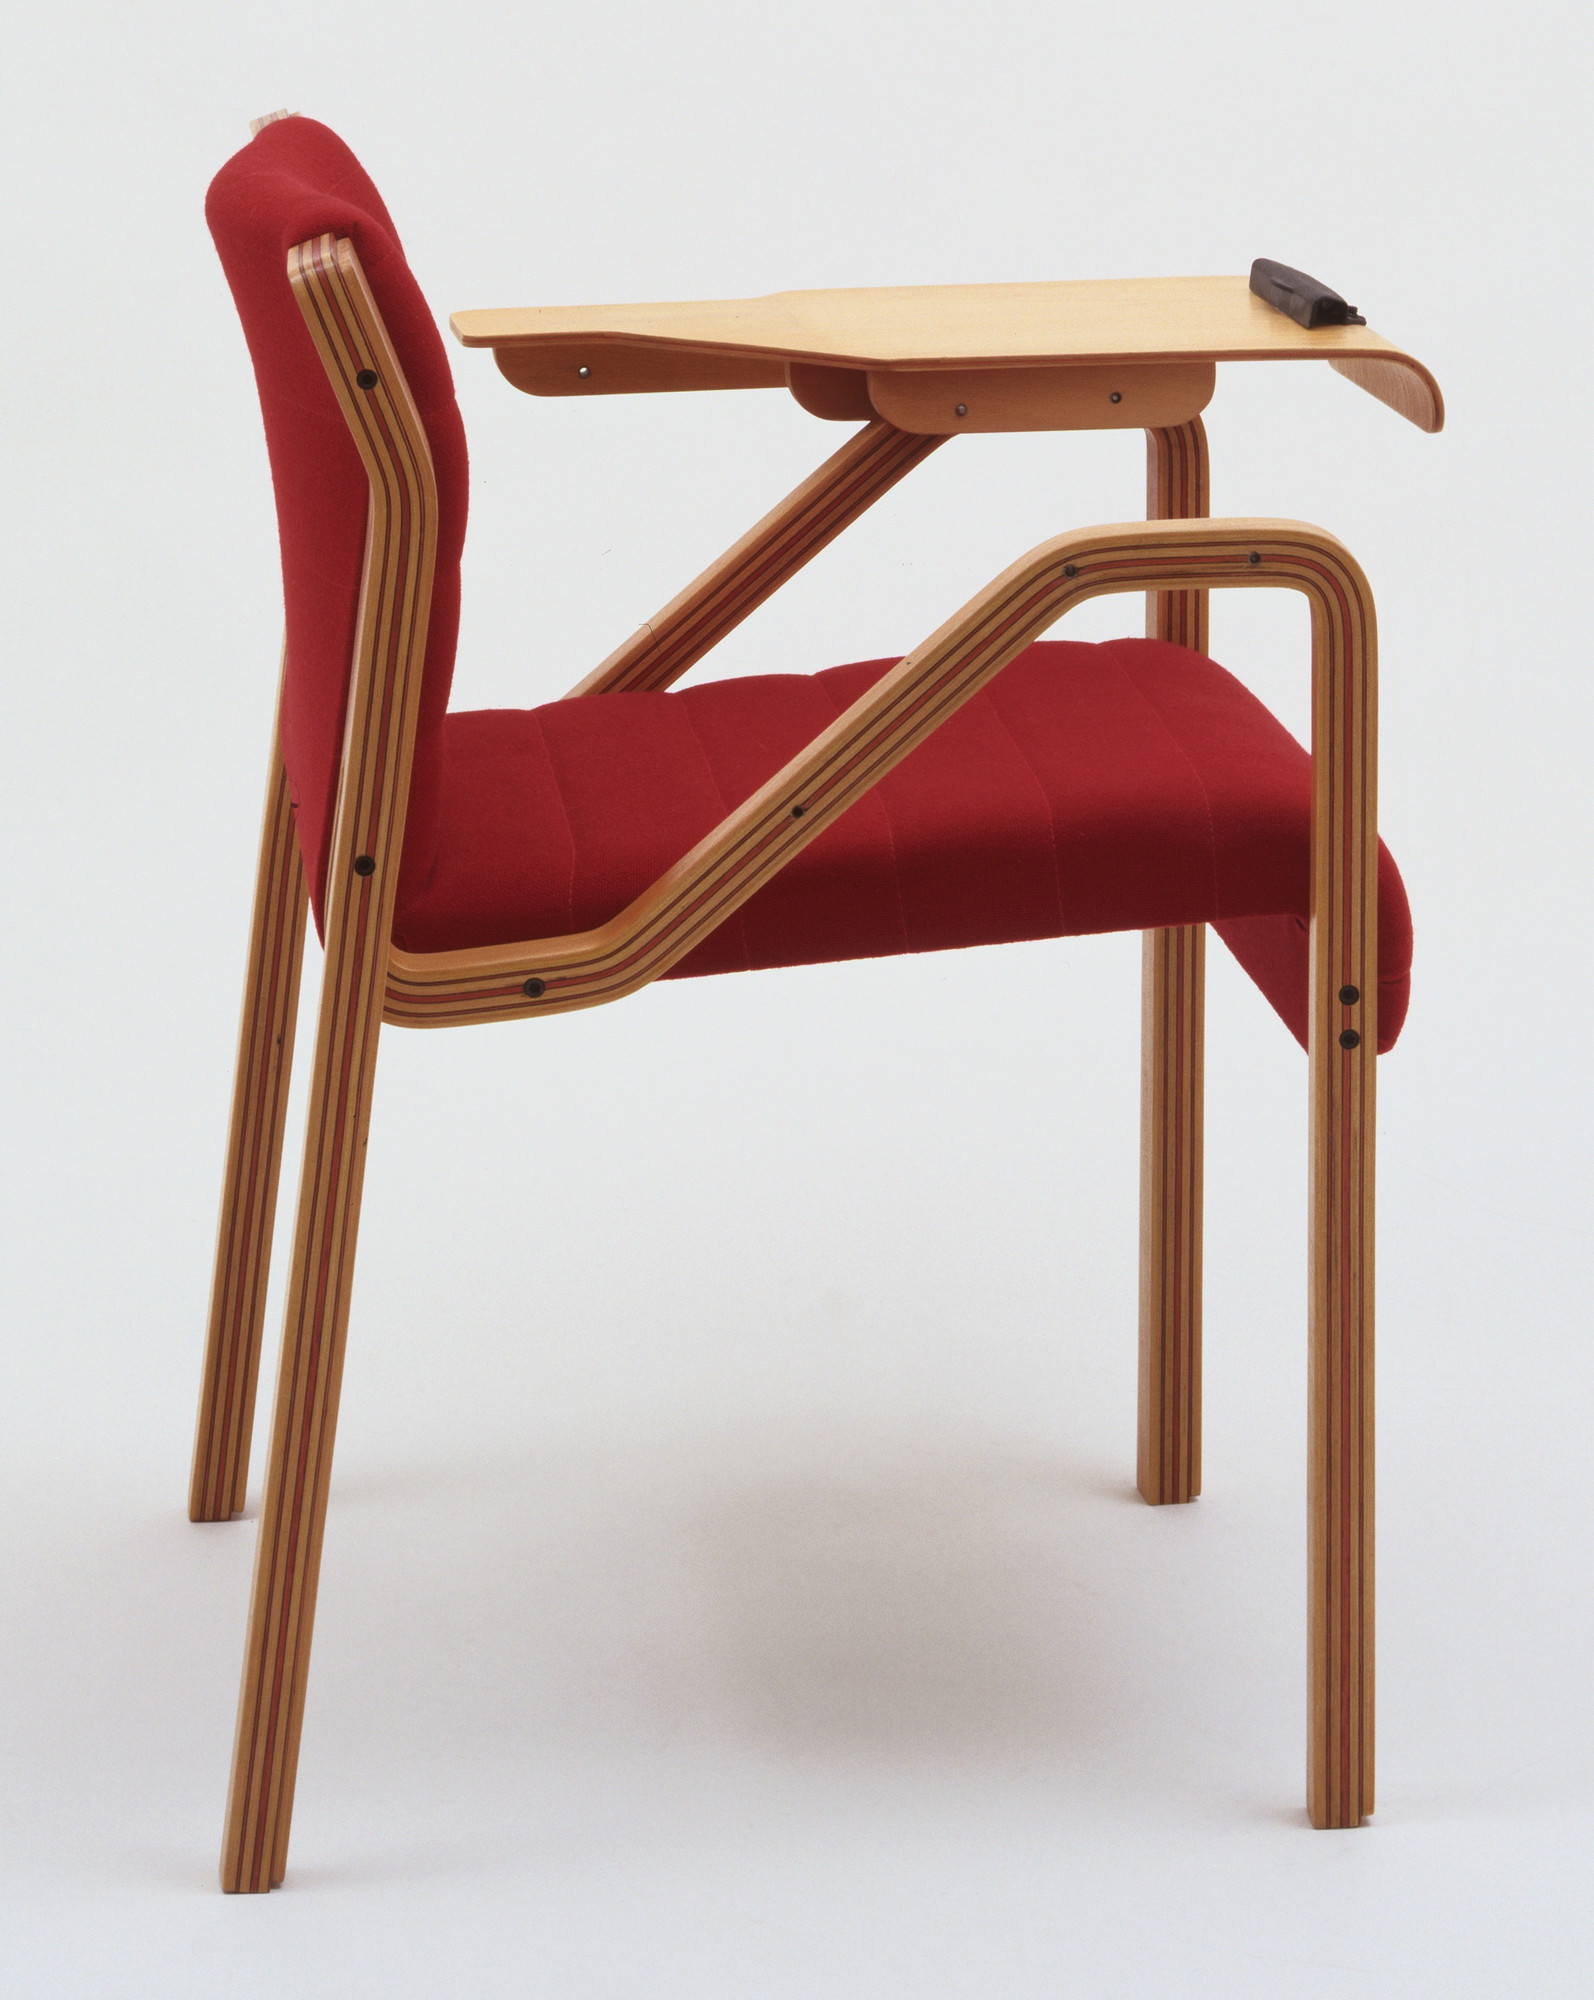 Hector Coronado. K Armchair with Writing Wing. 1978